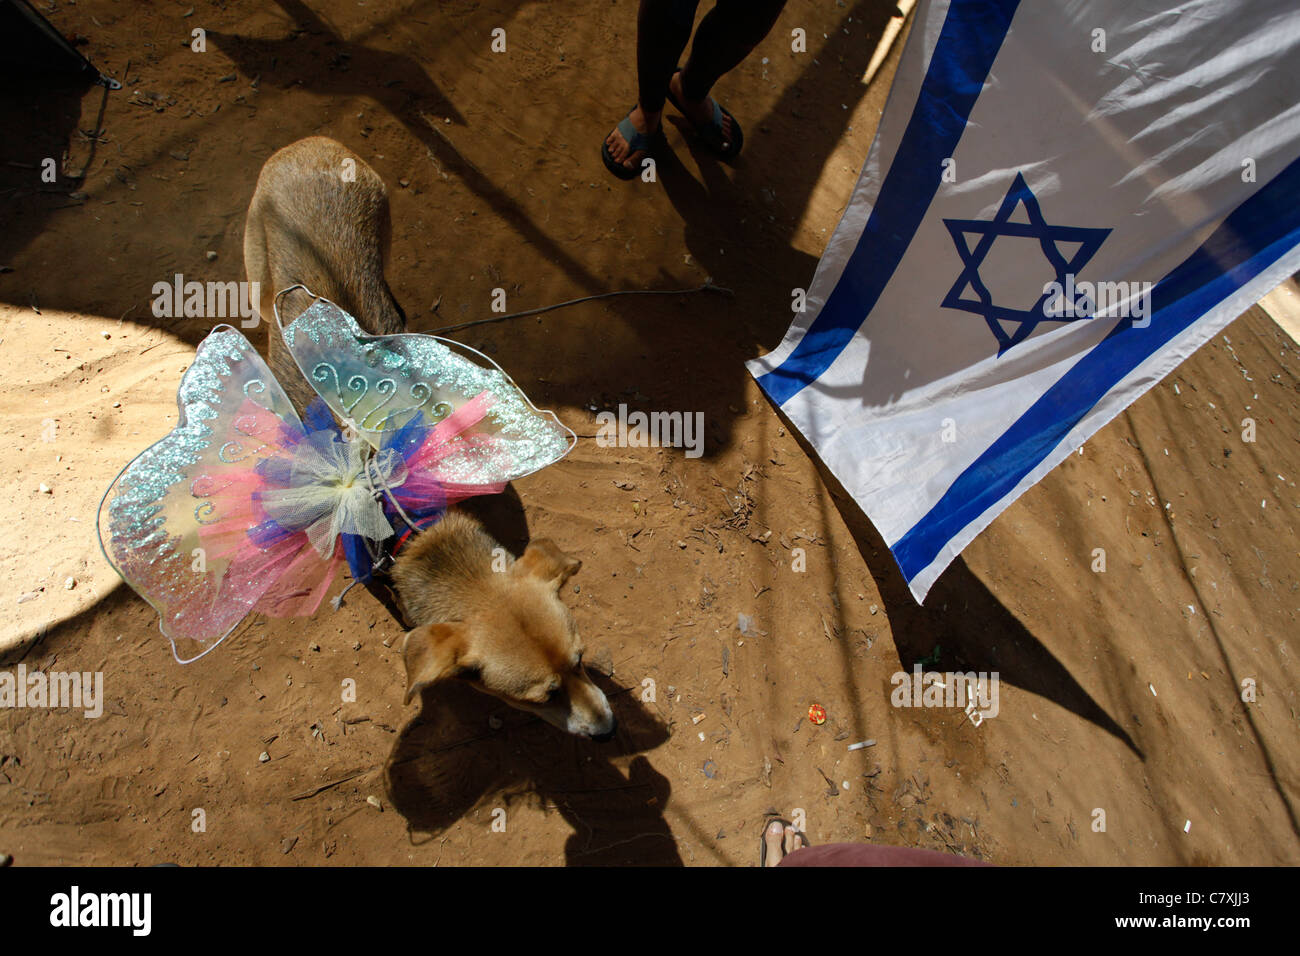 A dog decorated is seen with the Israeli flag during Cost of Living protest in Tel Aviv Israel. The social justice - Stock Image